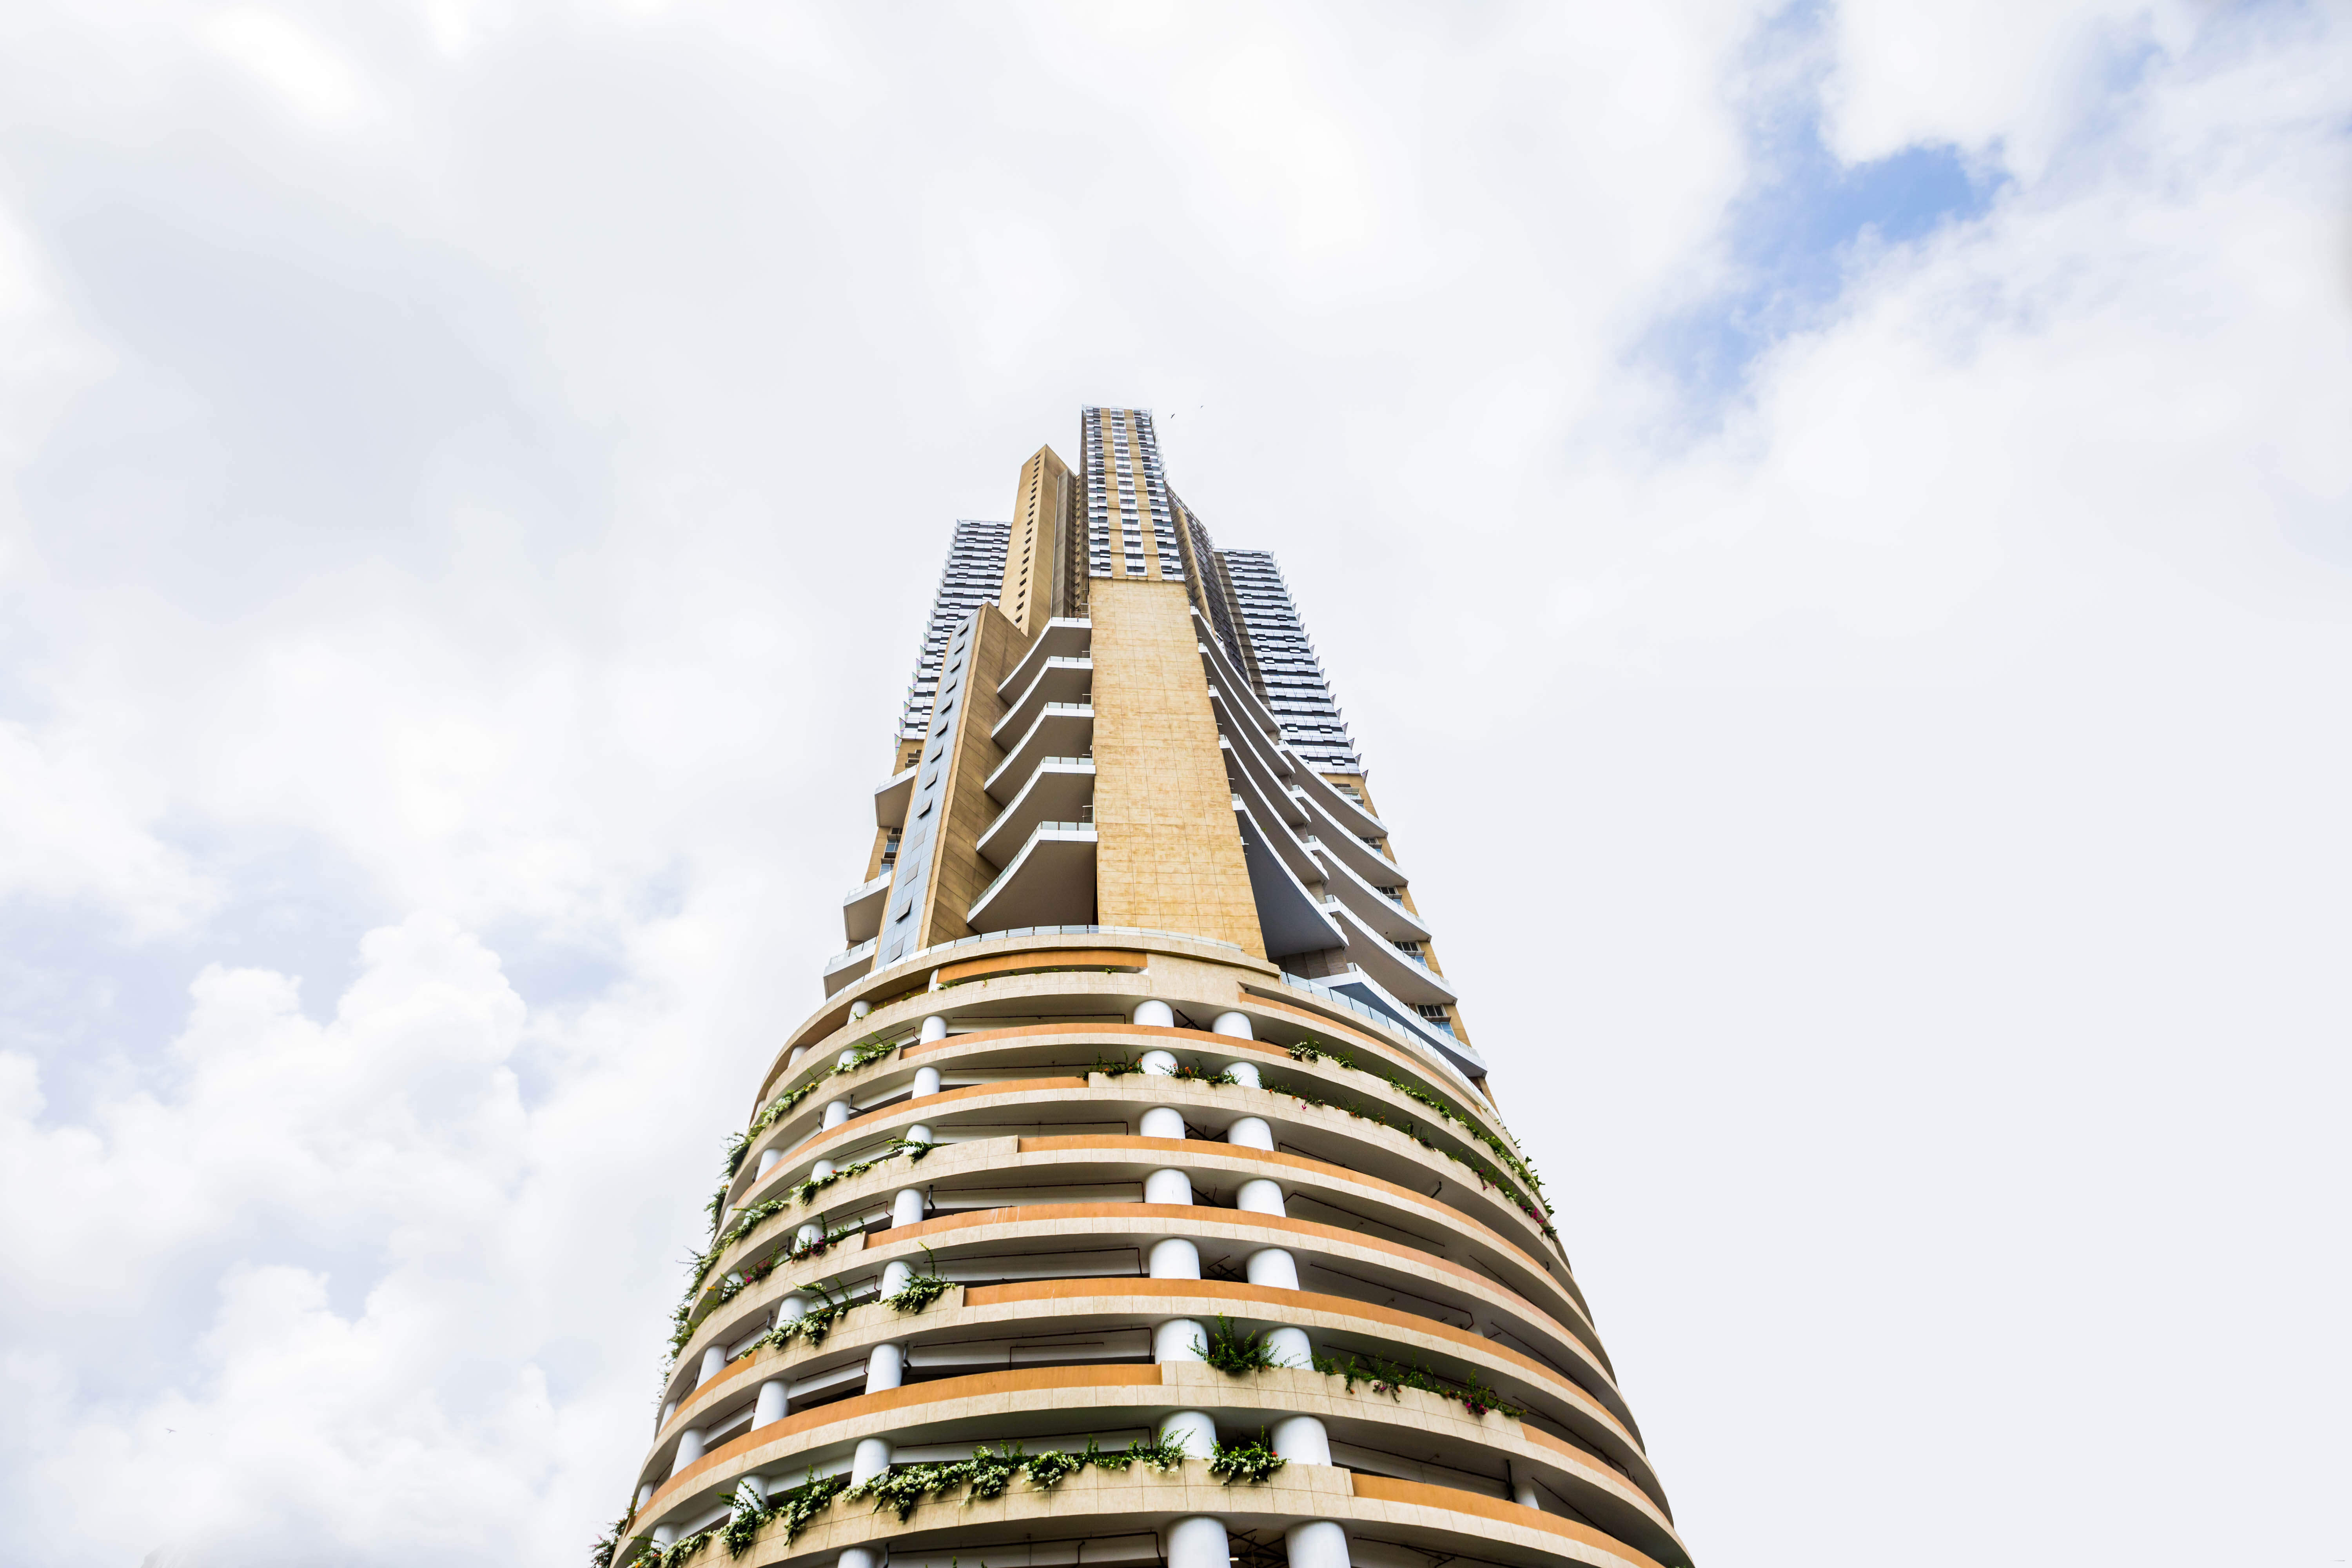 Top Residential Real Estate In Mumbai For Luxury Homes